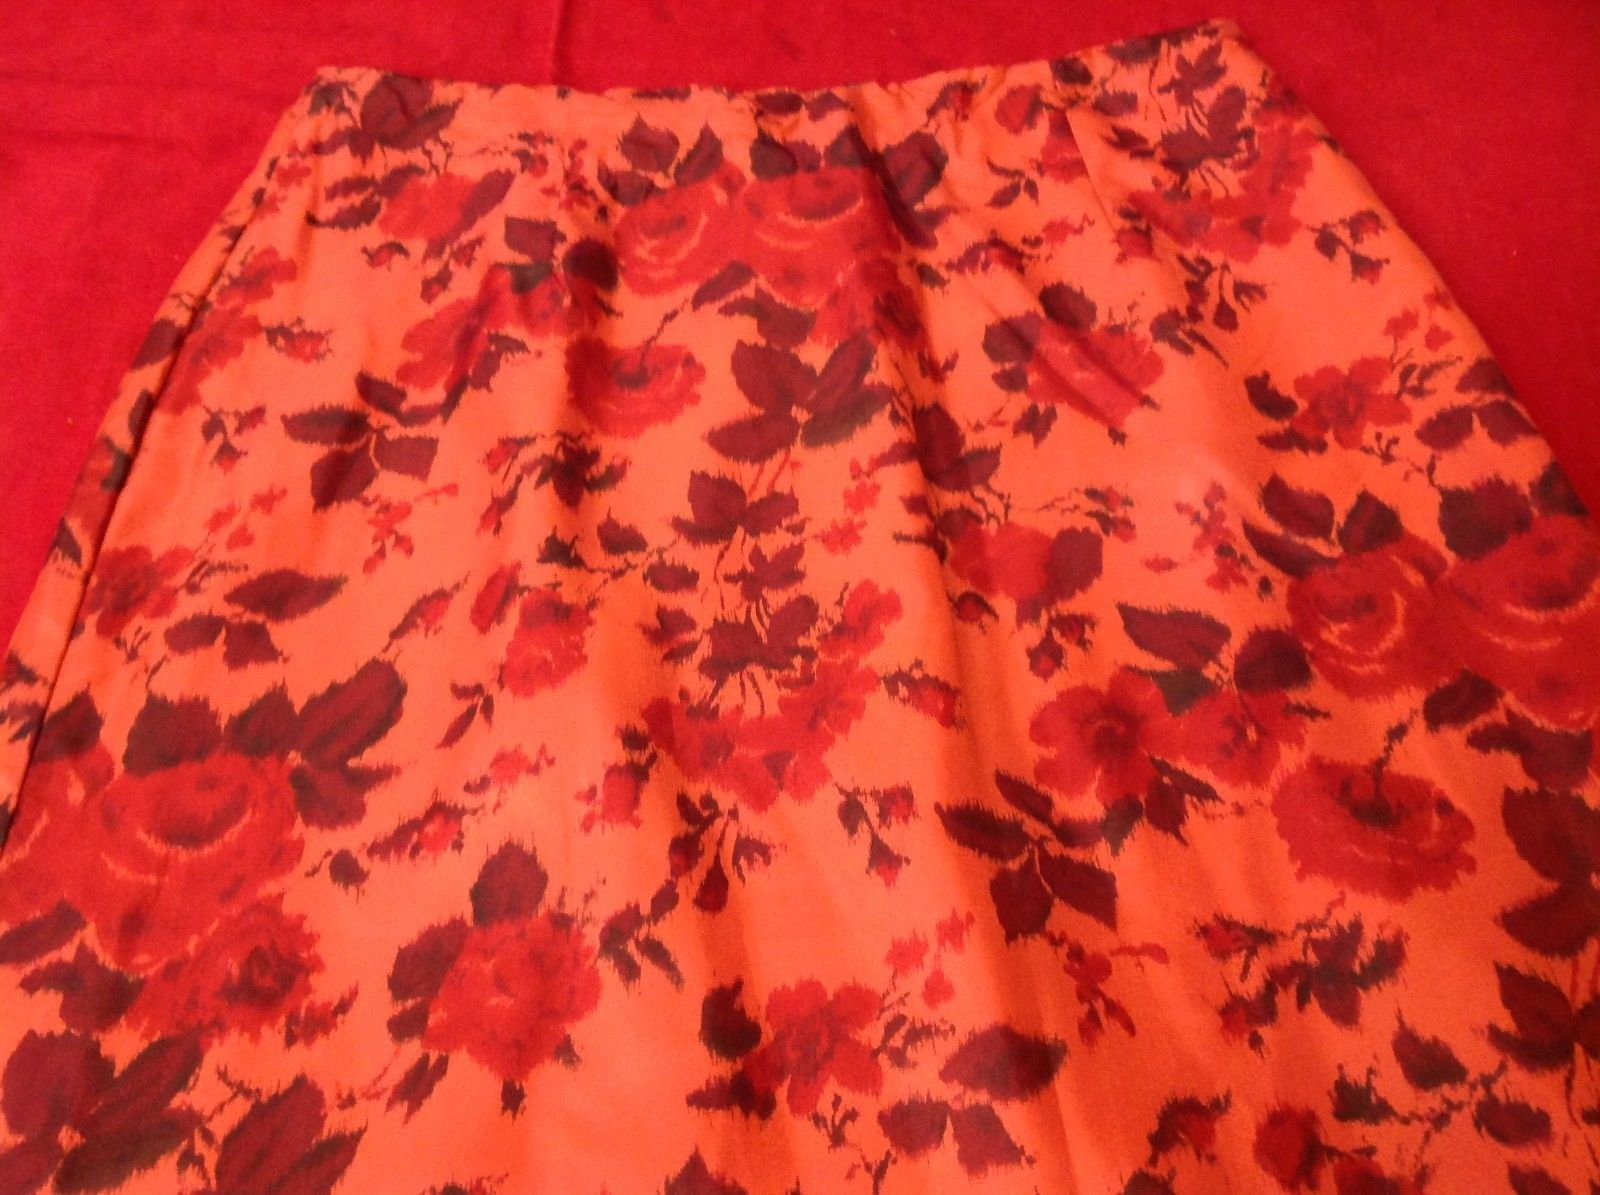 Maxon Women's Red Floral Skirt size 8